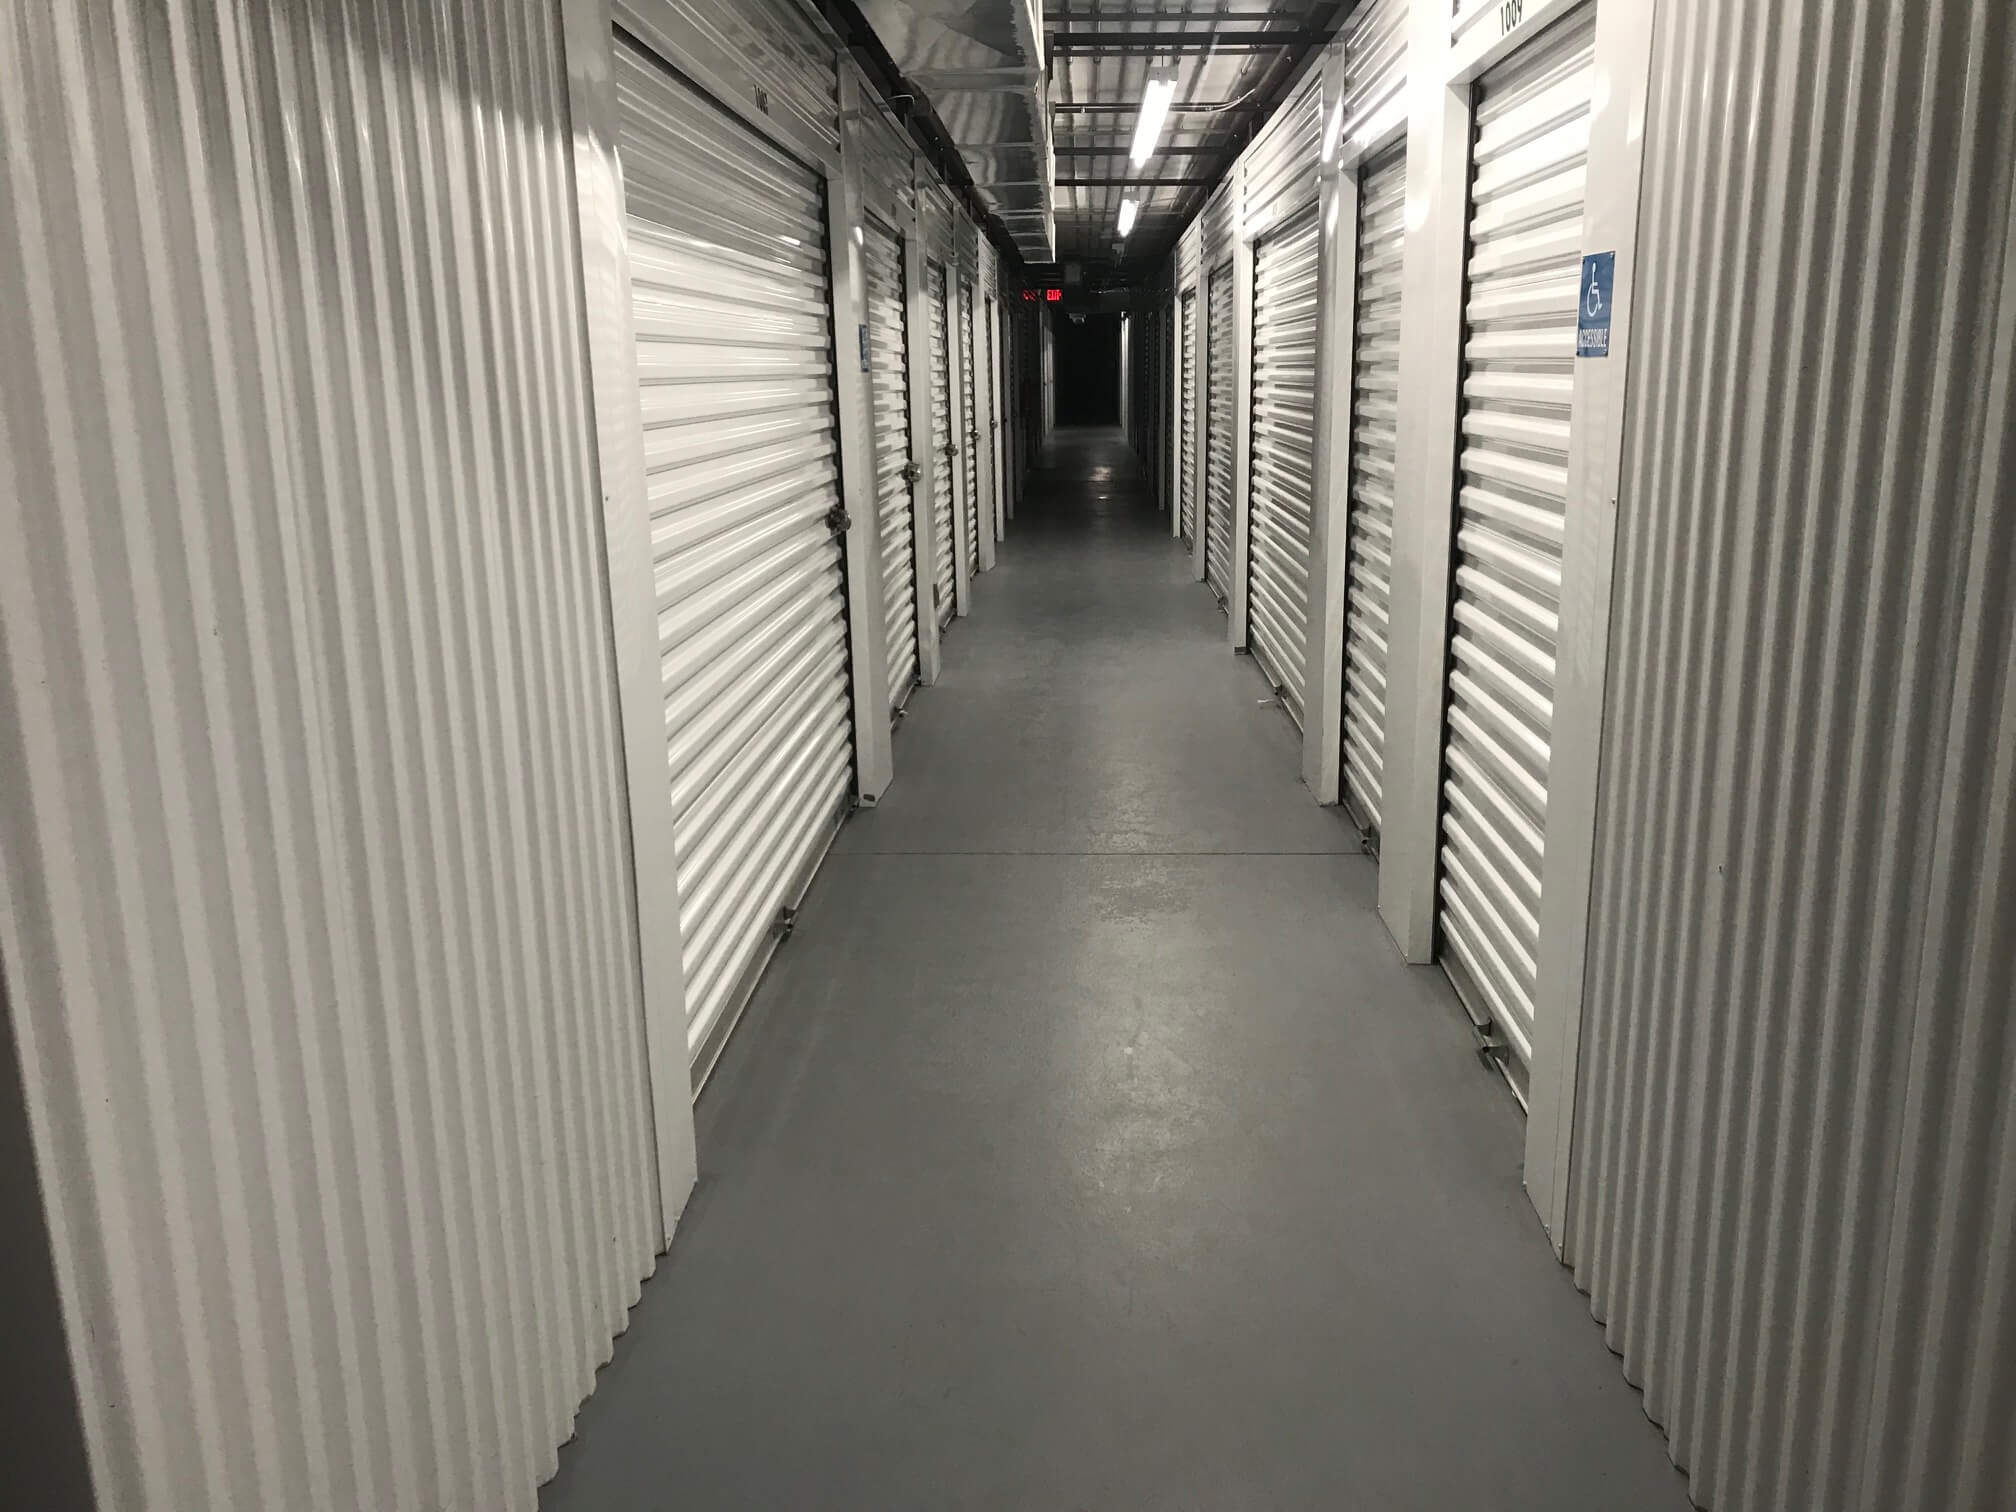 Inside row of storage units at Smart Stop self storage facility located at 150 Airport Blvd, Morrisville North Carolina